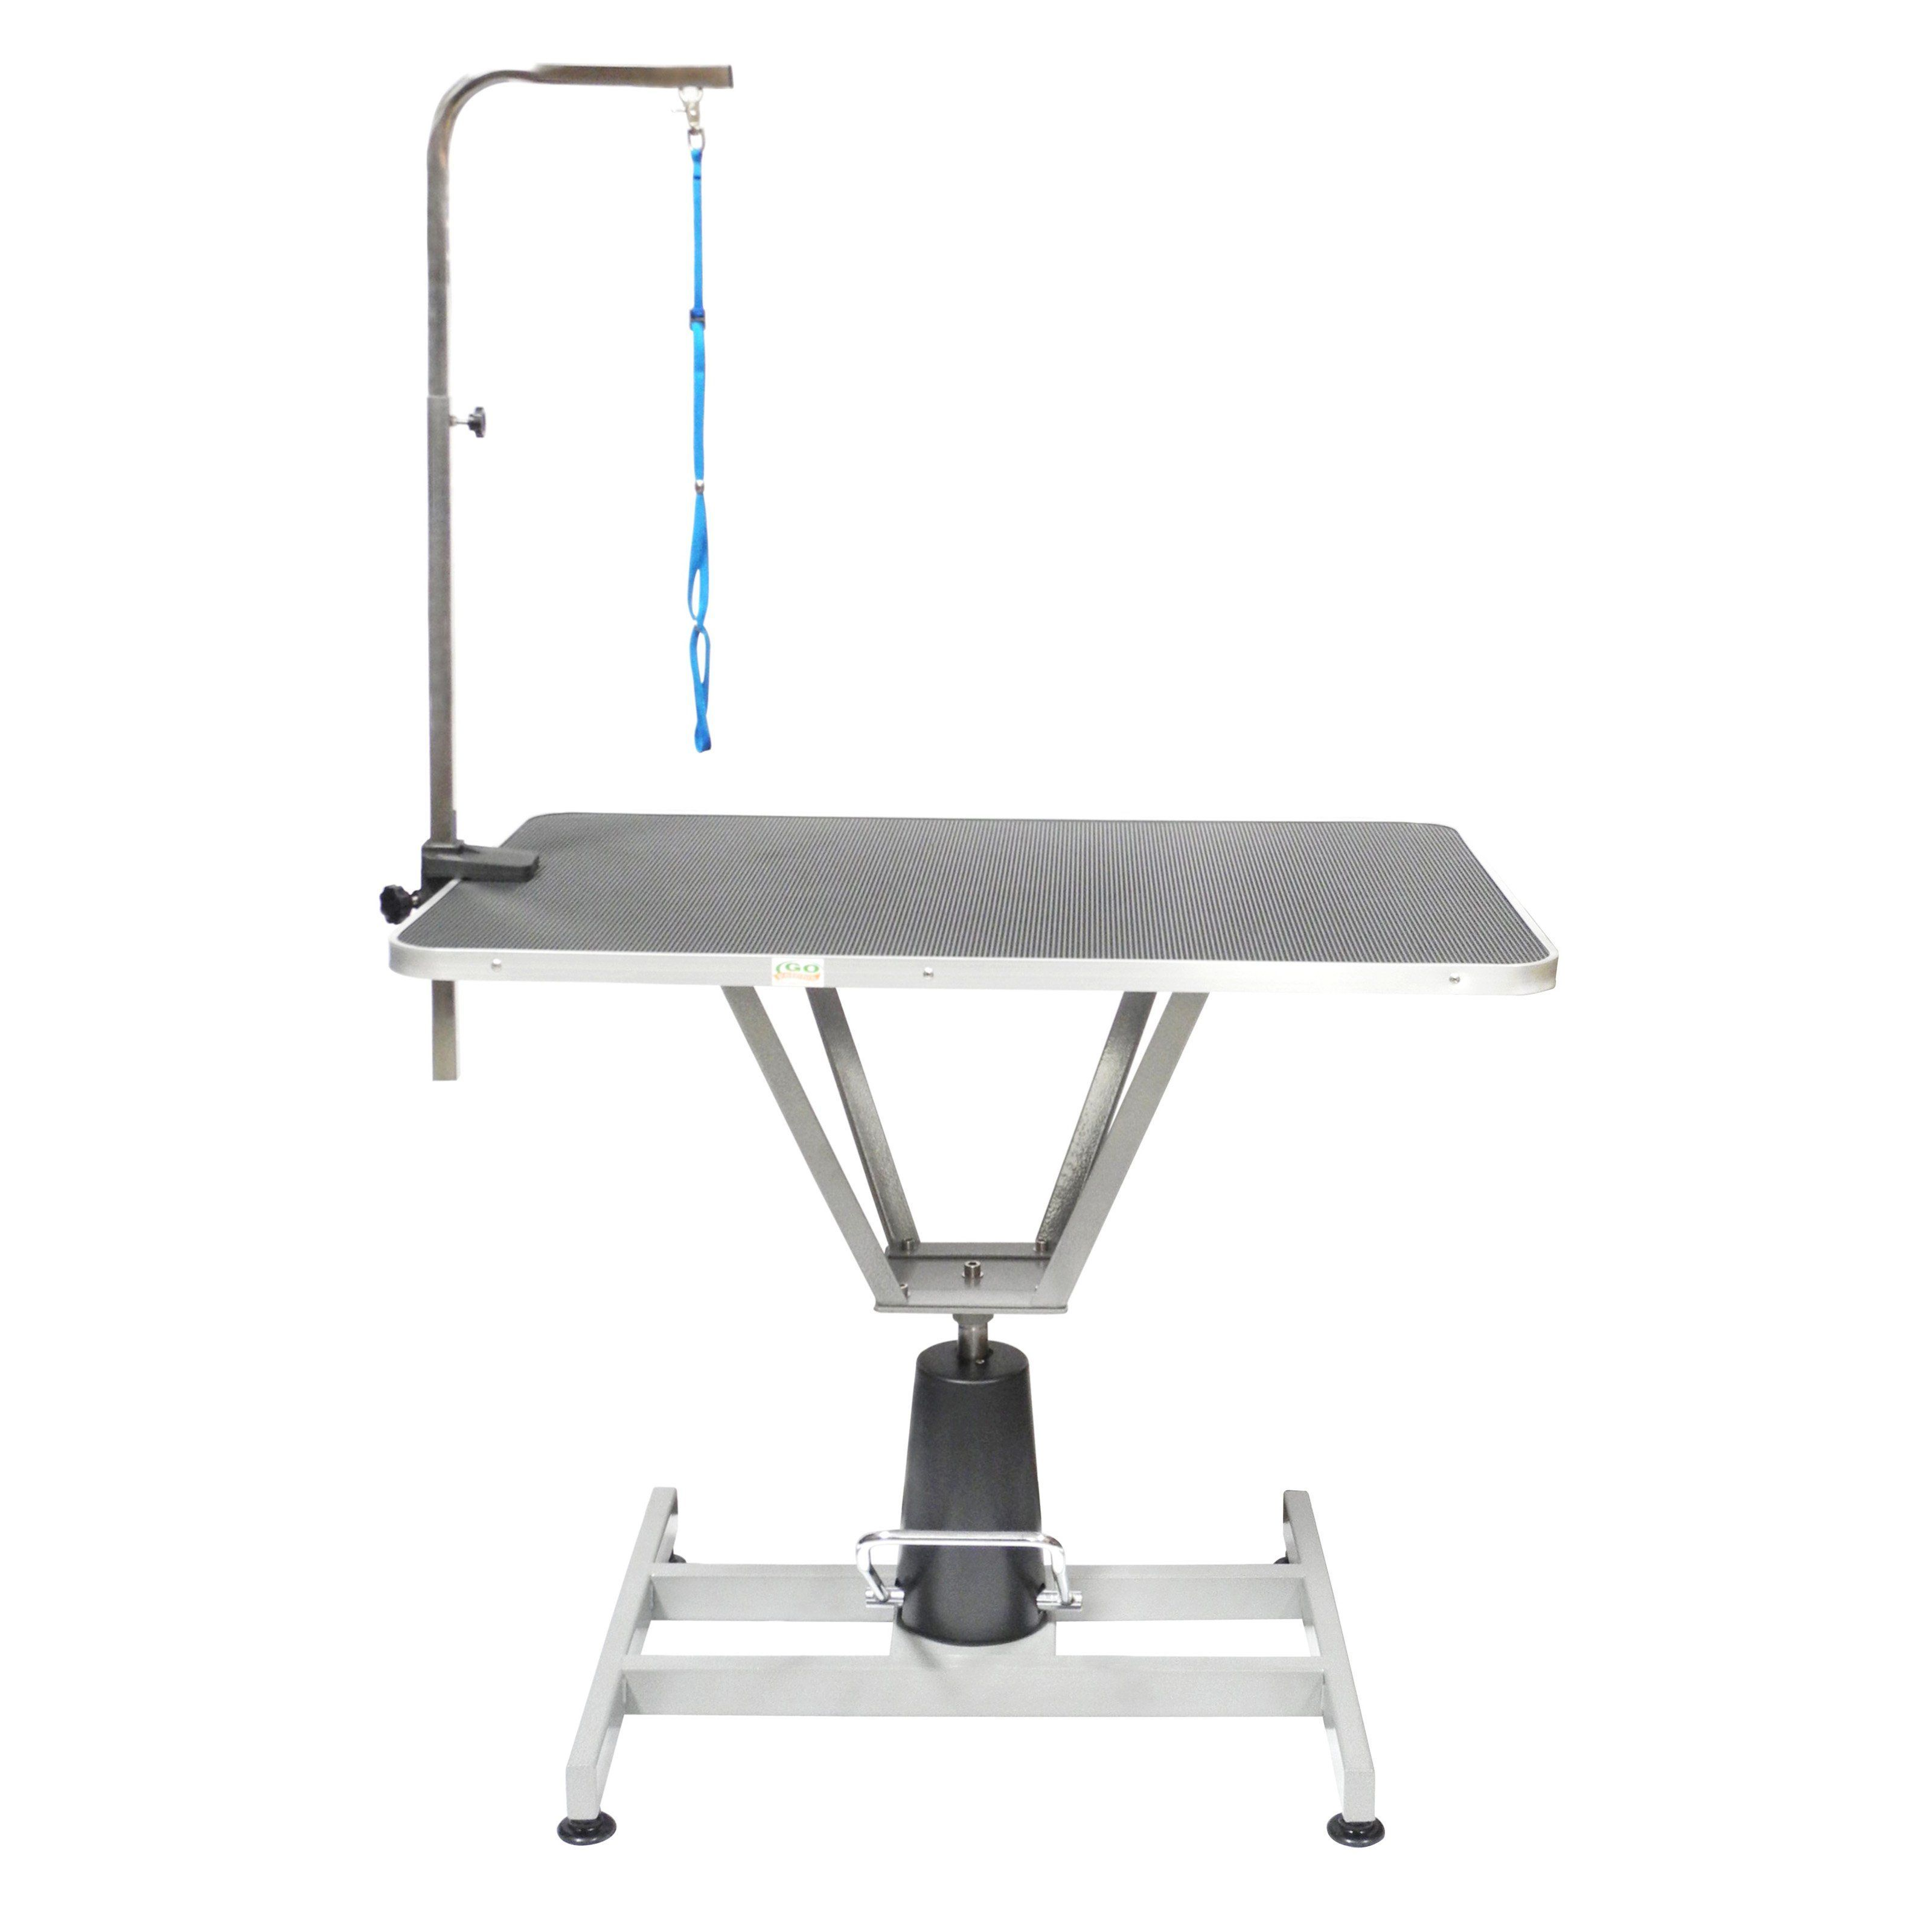 Go Pet Club 36 In Pet Dog Hydraulic Grooming Table With Arm Hgt